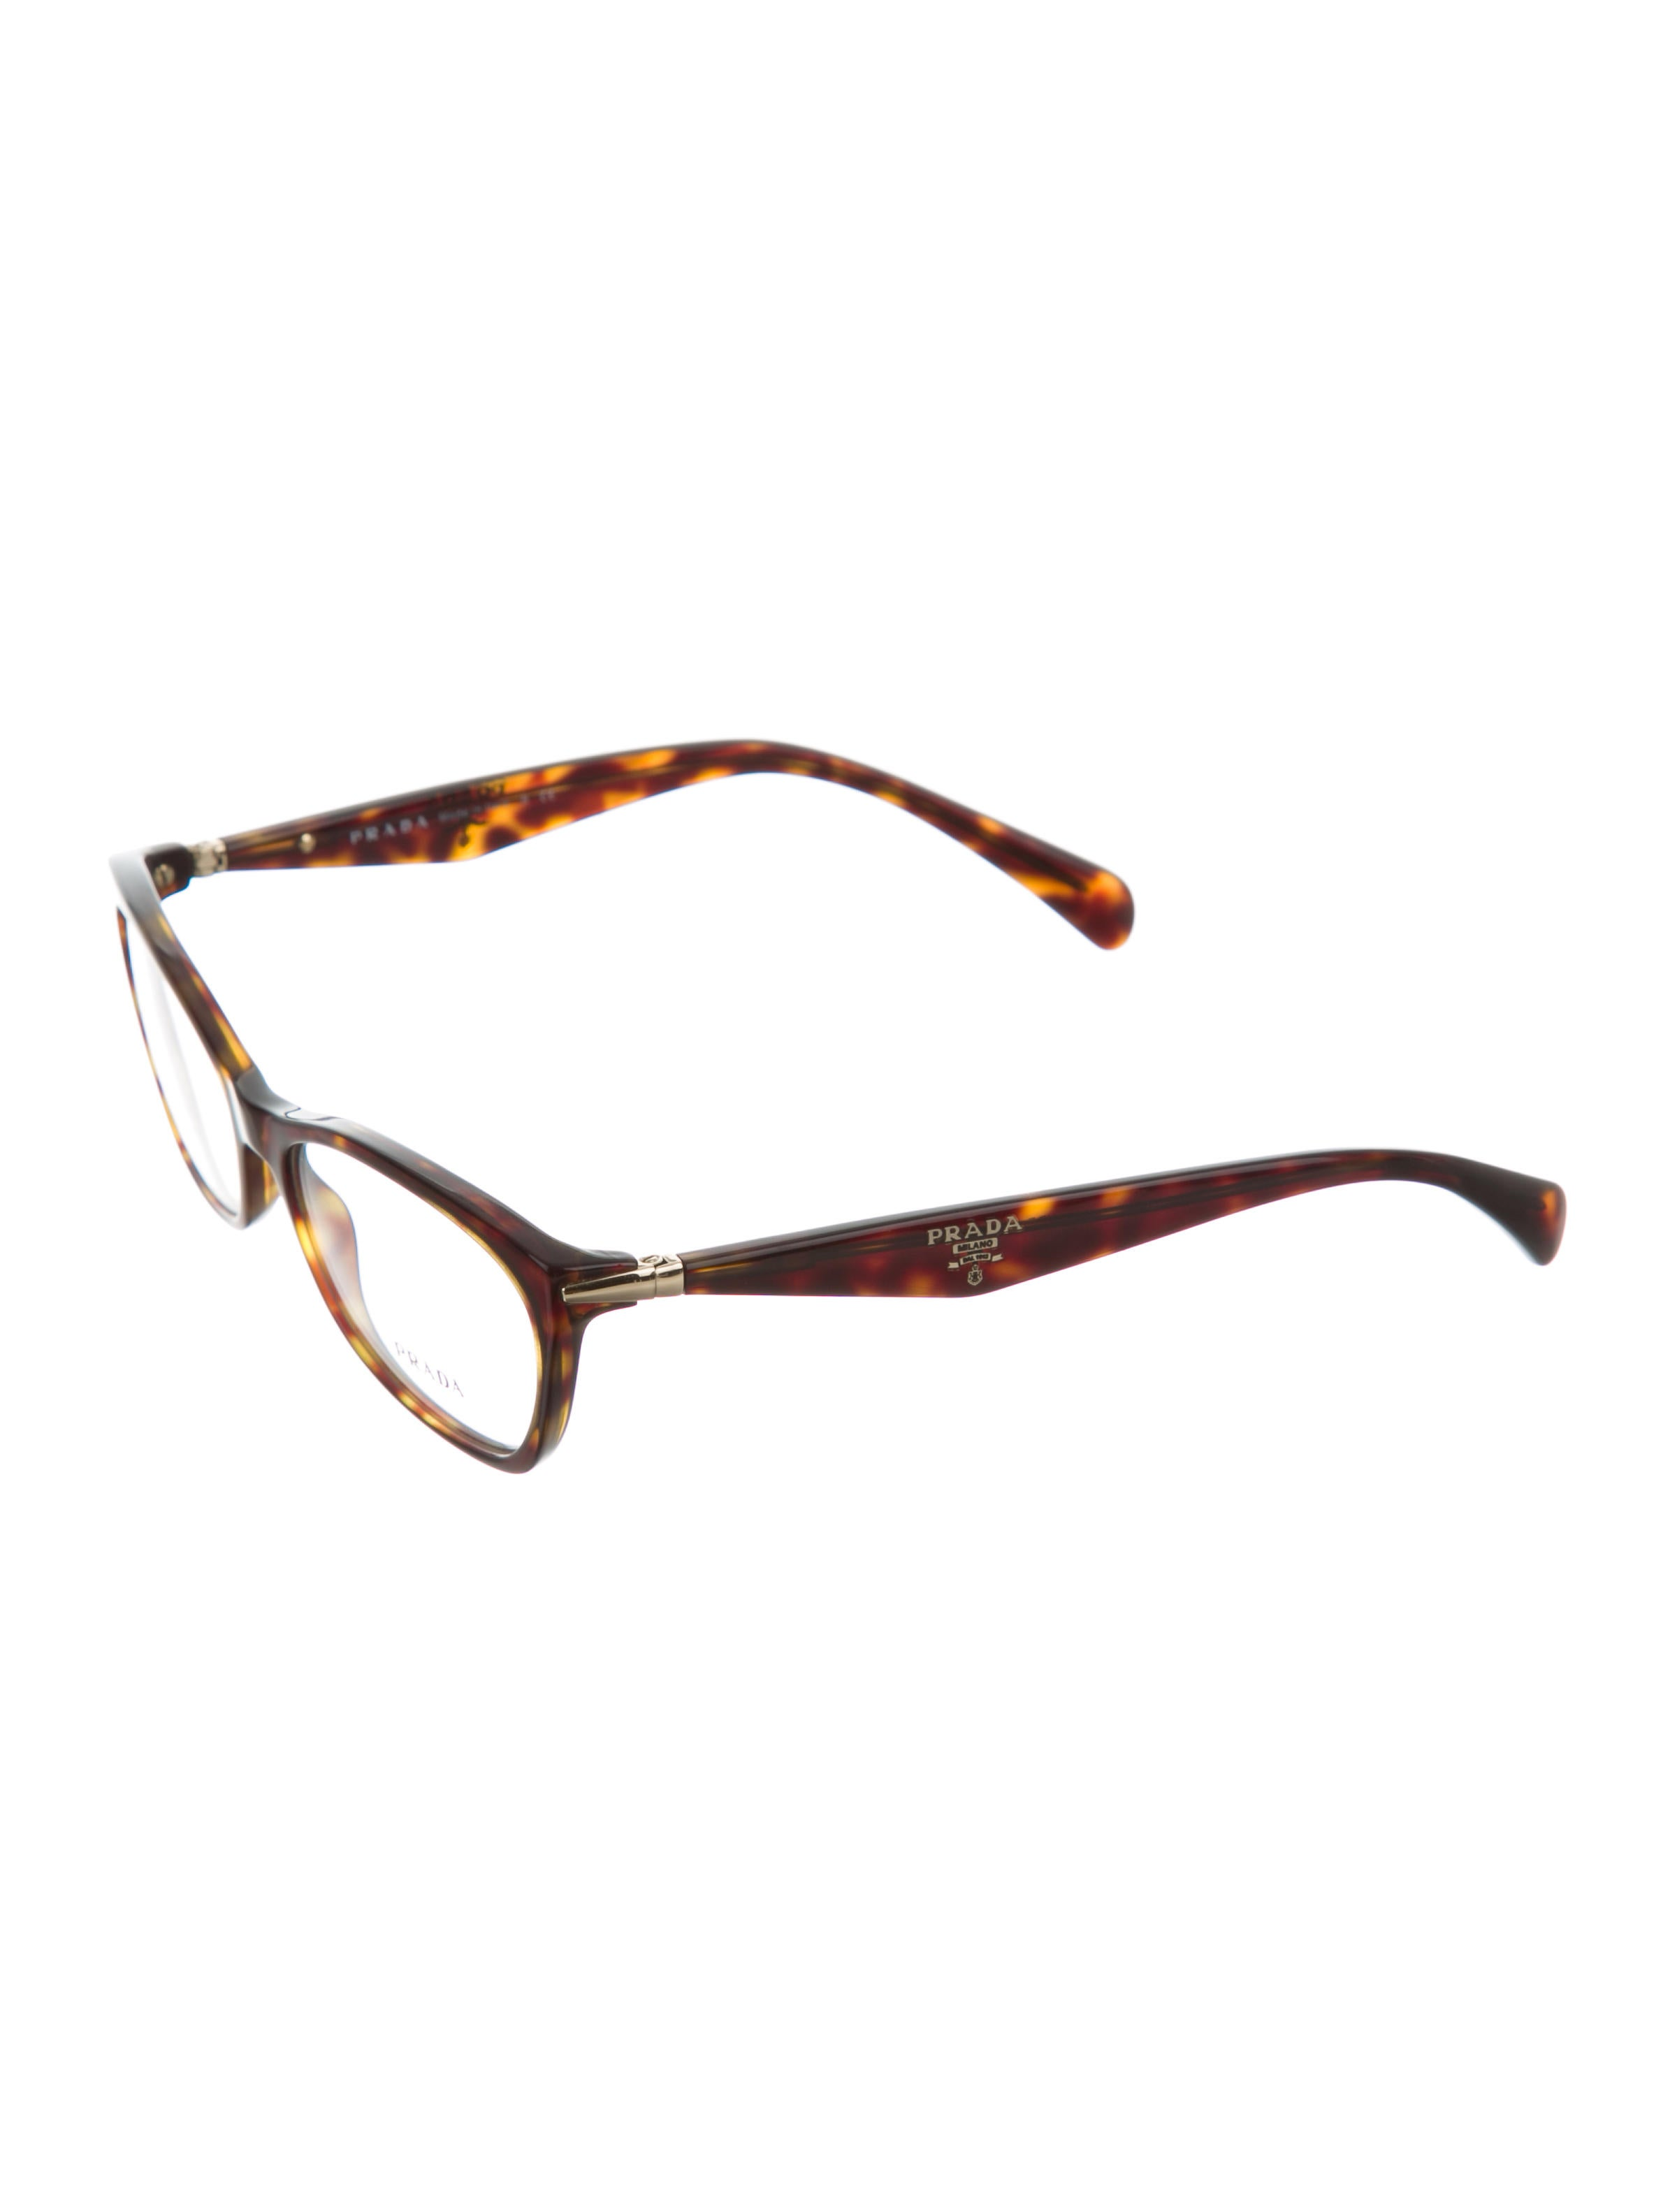 Glasses Frames Too Narrow : Prada Narrow Tortoiseshell Eyeglasses - Accessories ...